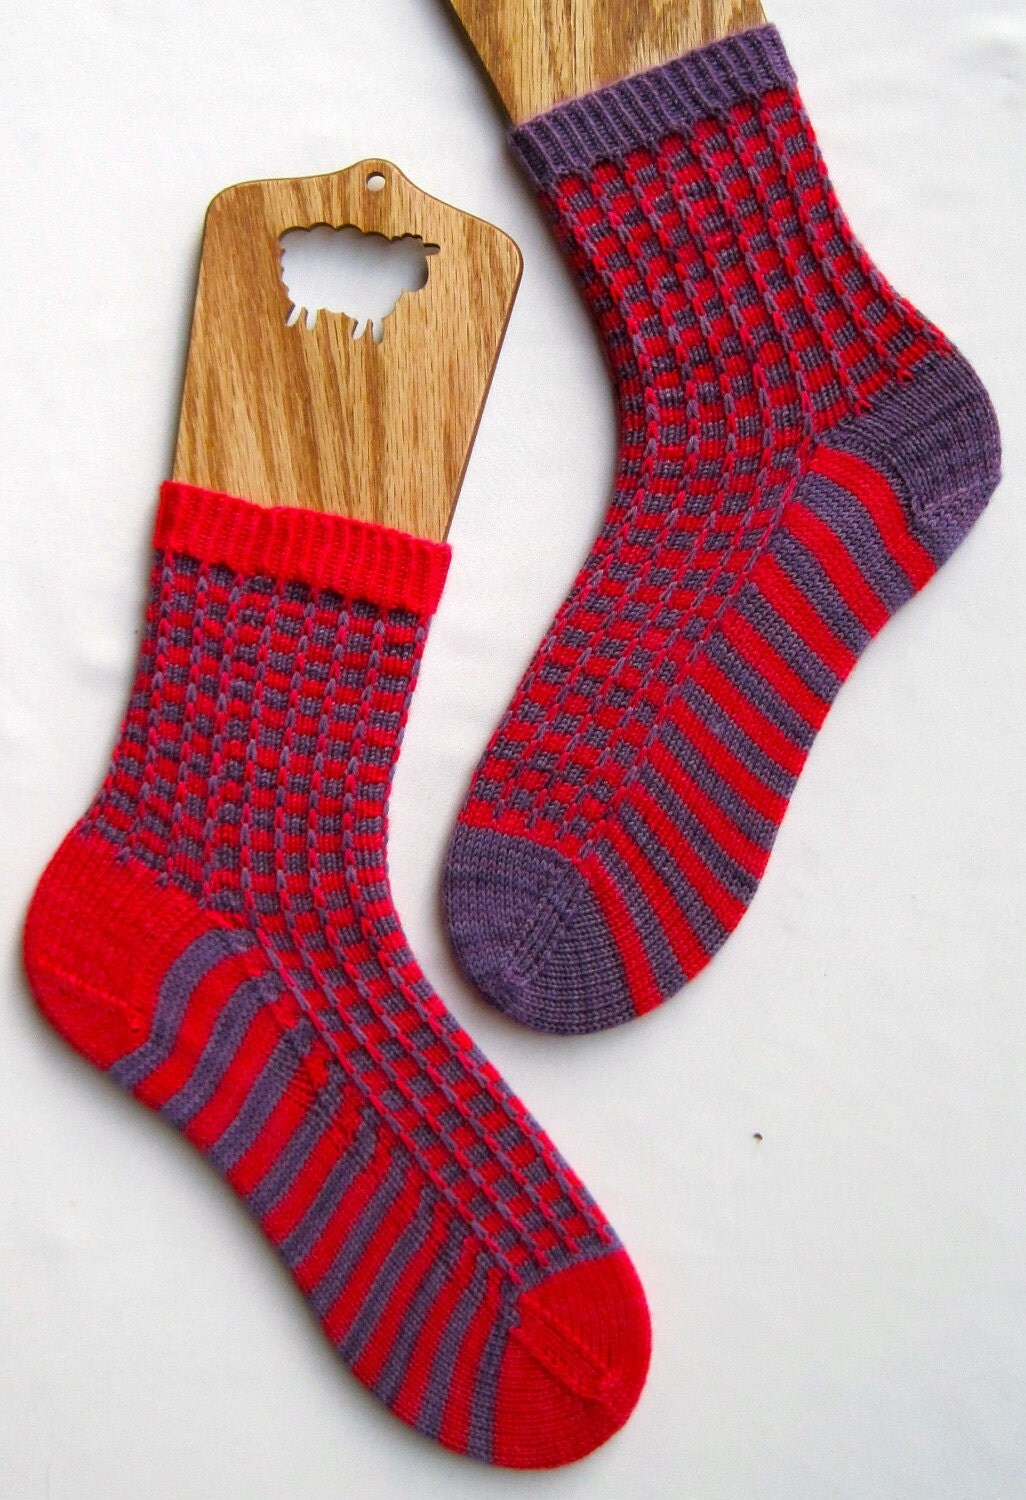 Knitting With Two Colors Patterns : Knit sock pattern two color mismatched by wearableartemporium